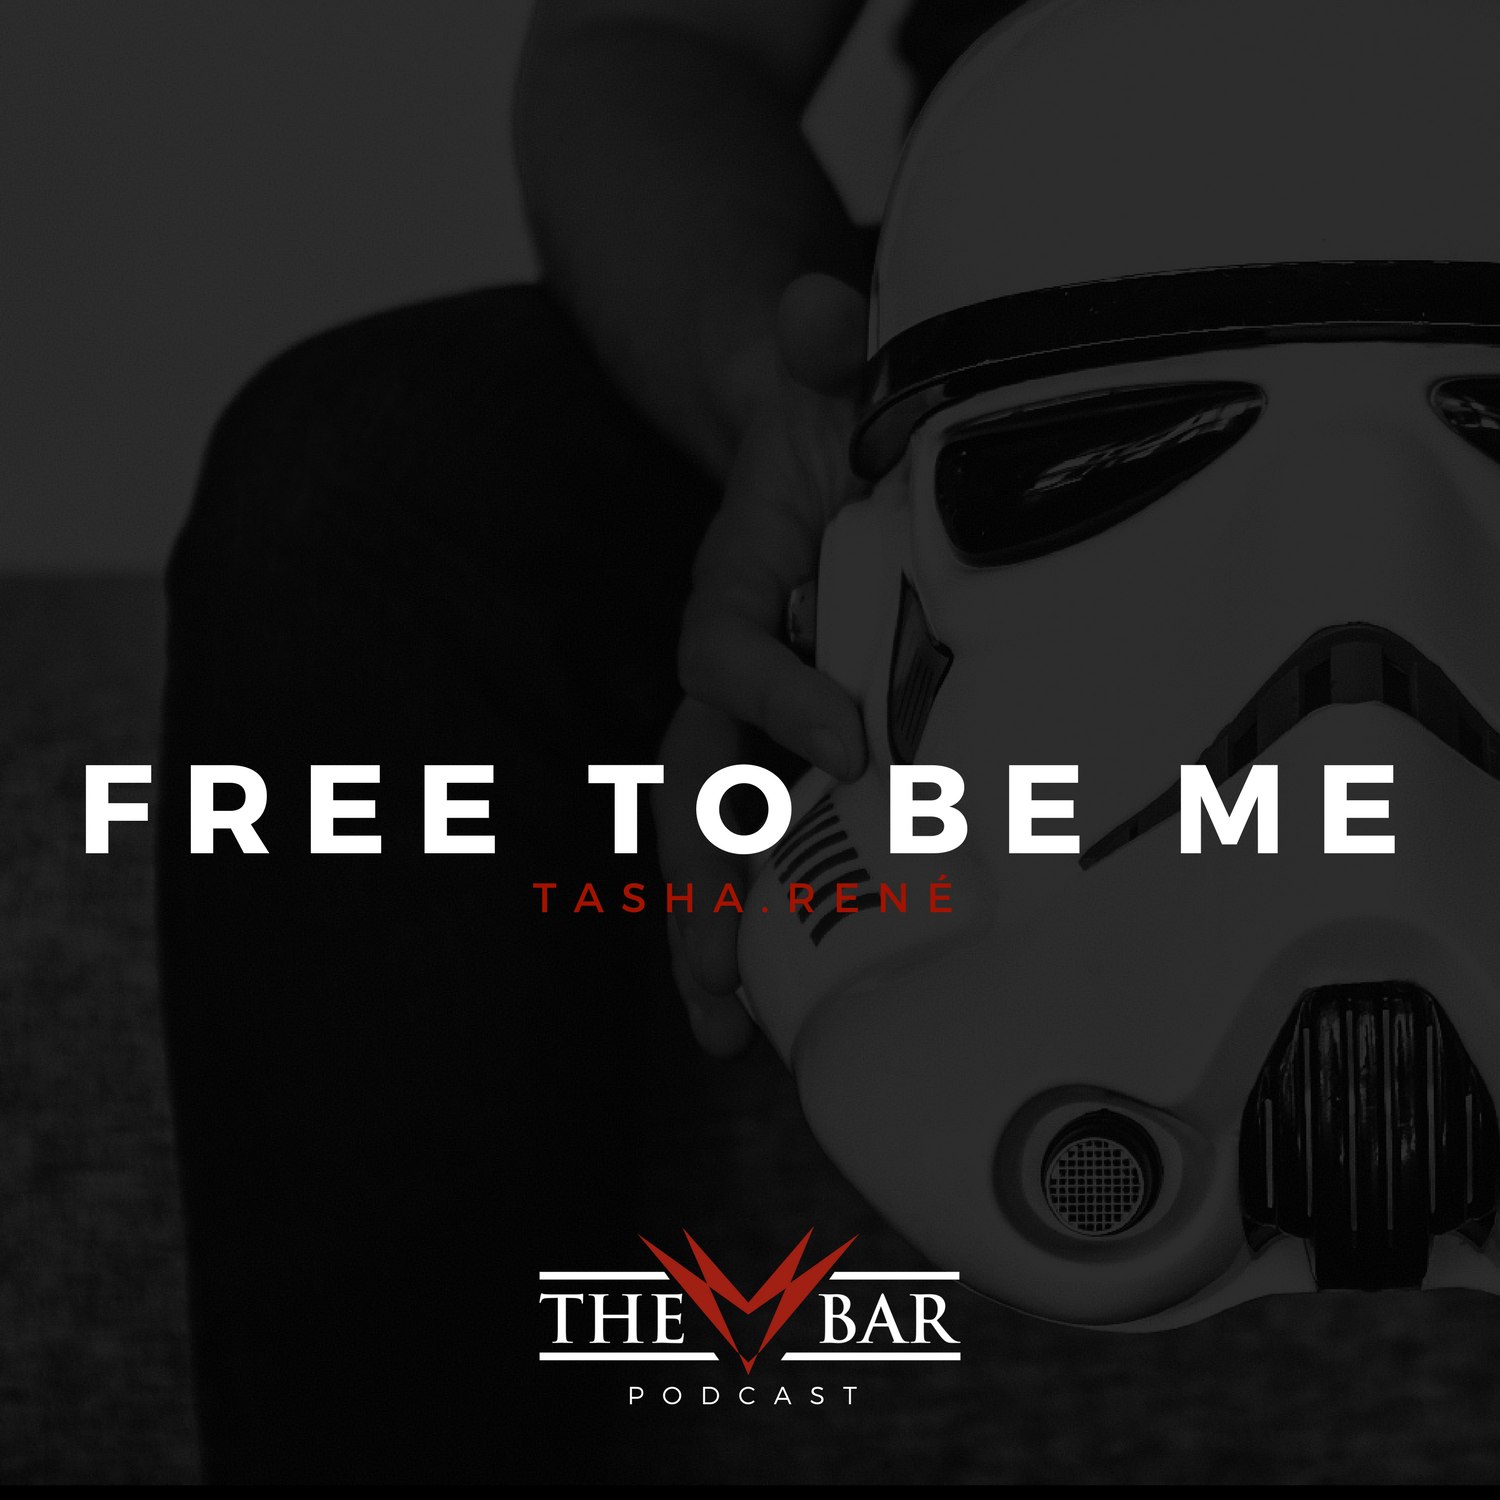 The-BAR-Church-Free-To-Be-Me-Tasha-Rene